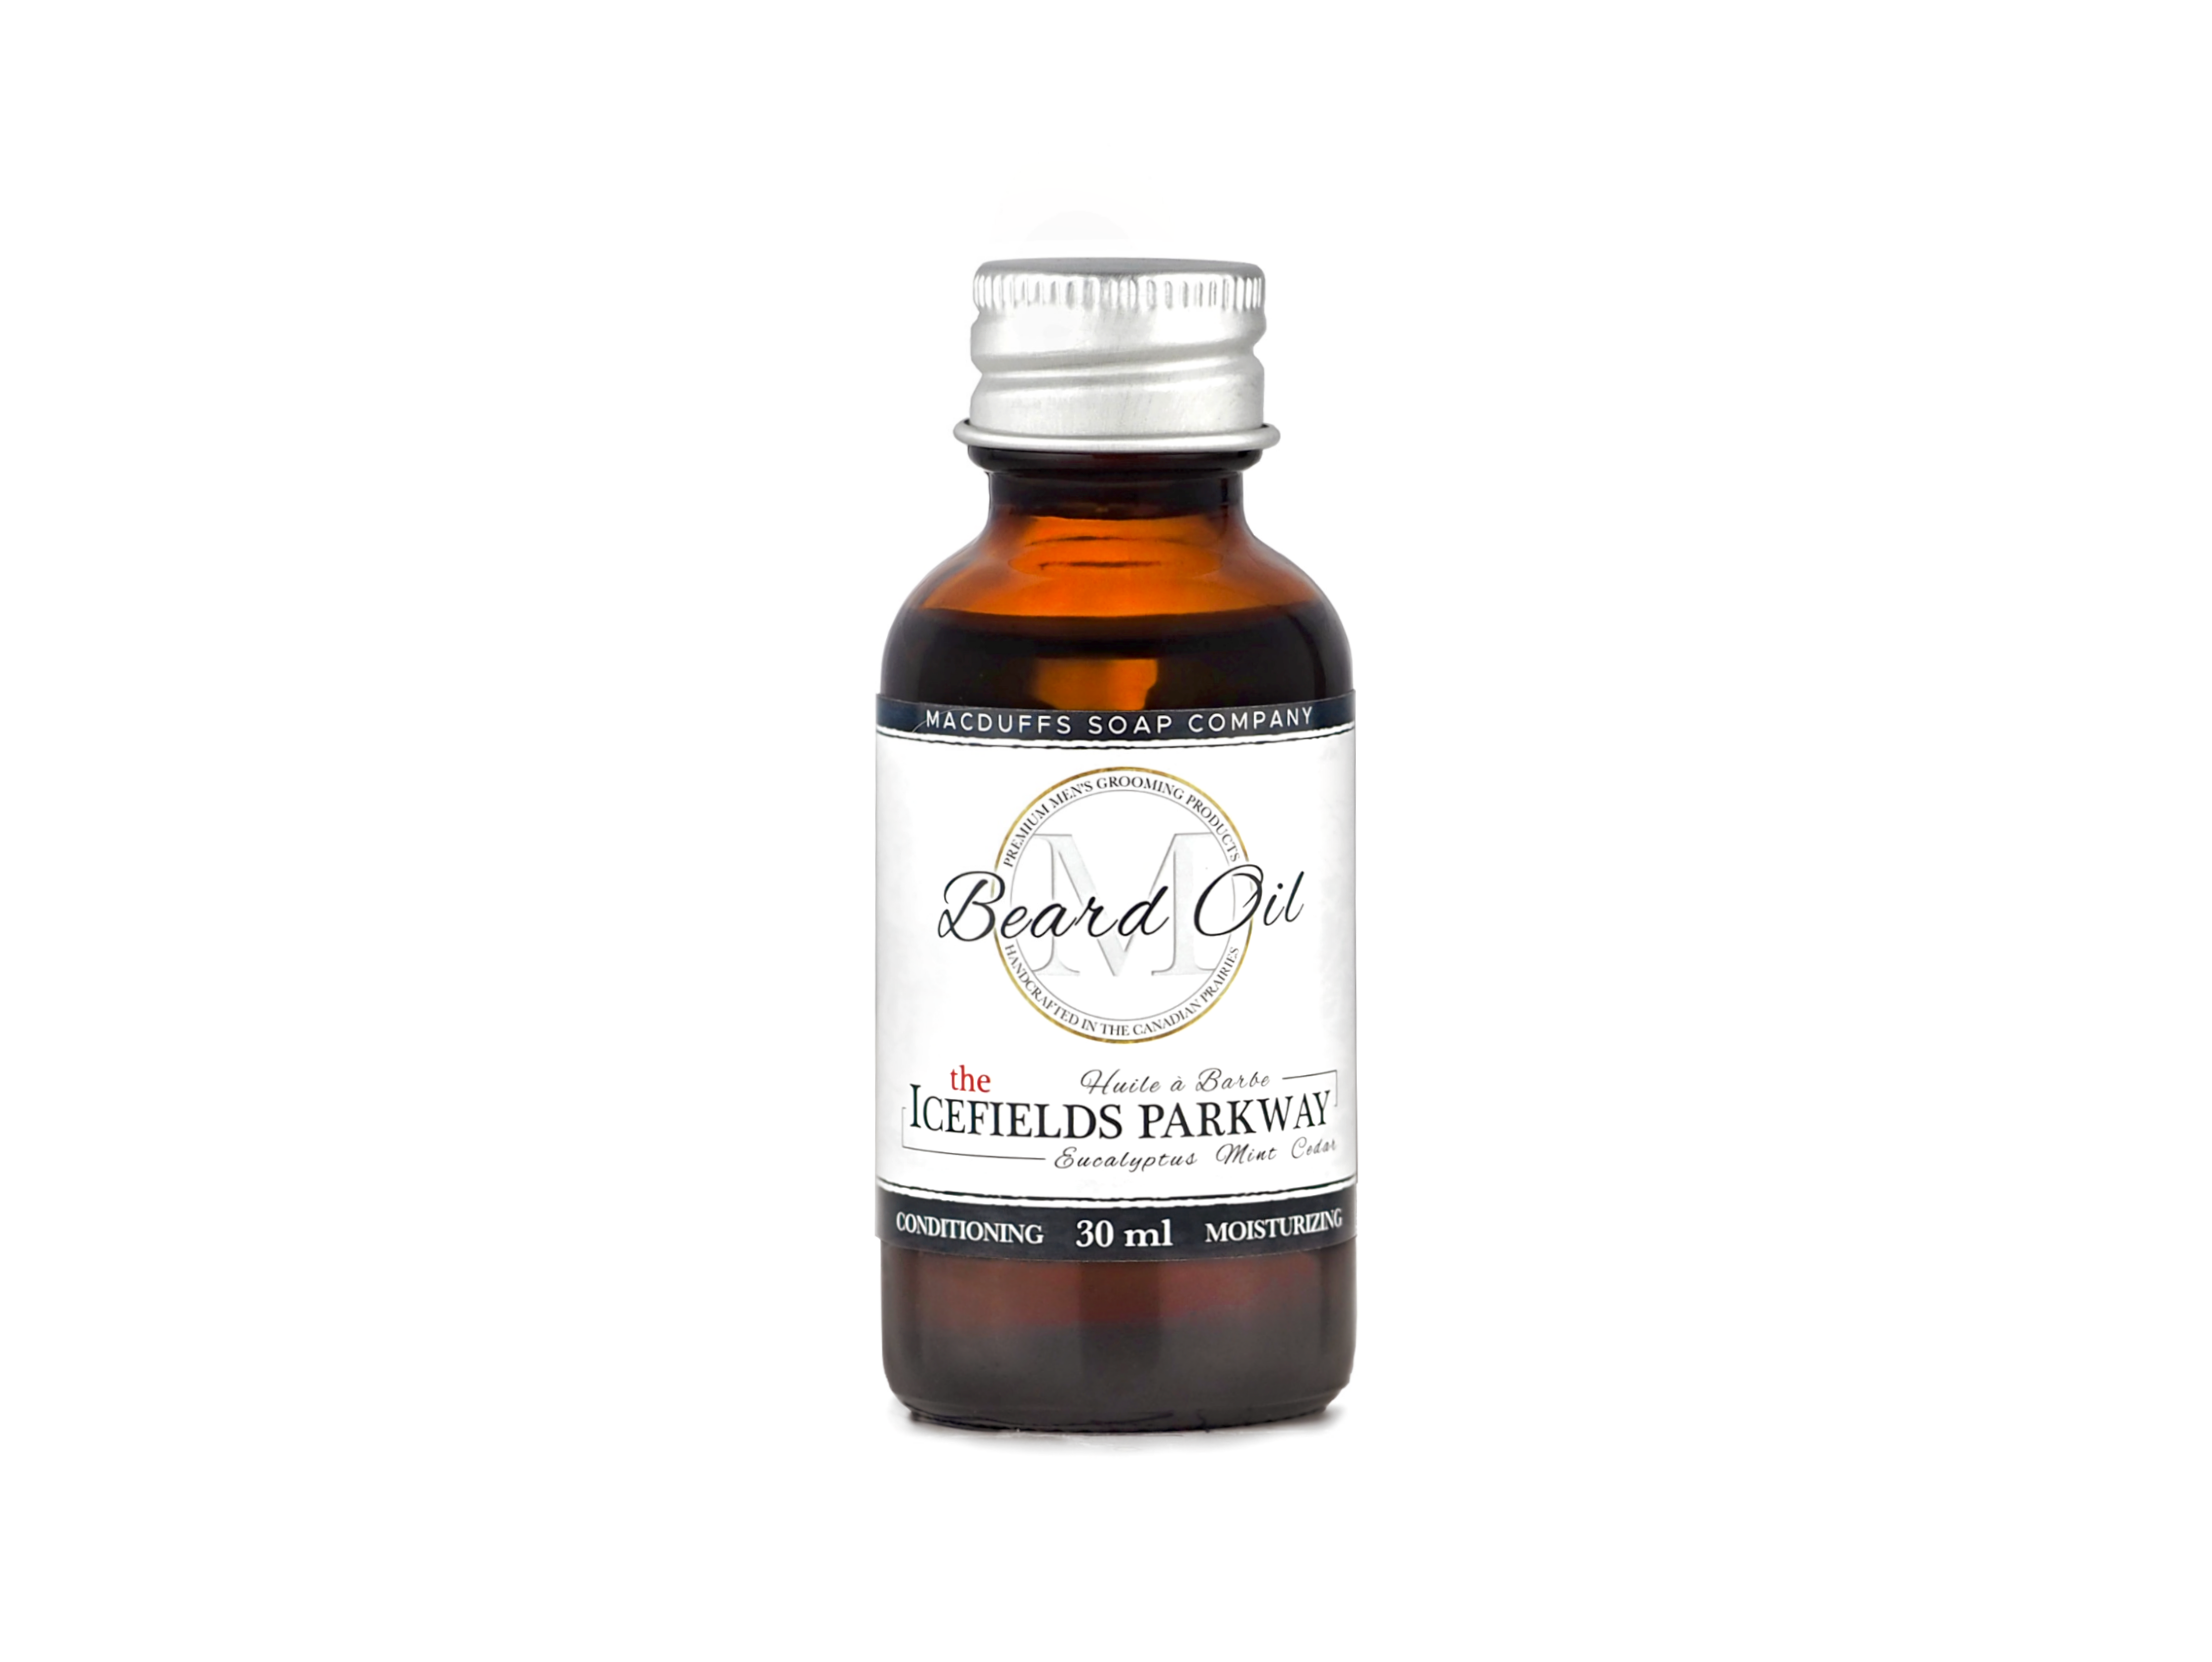 beard oil - icefields parkway ROTATE